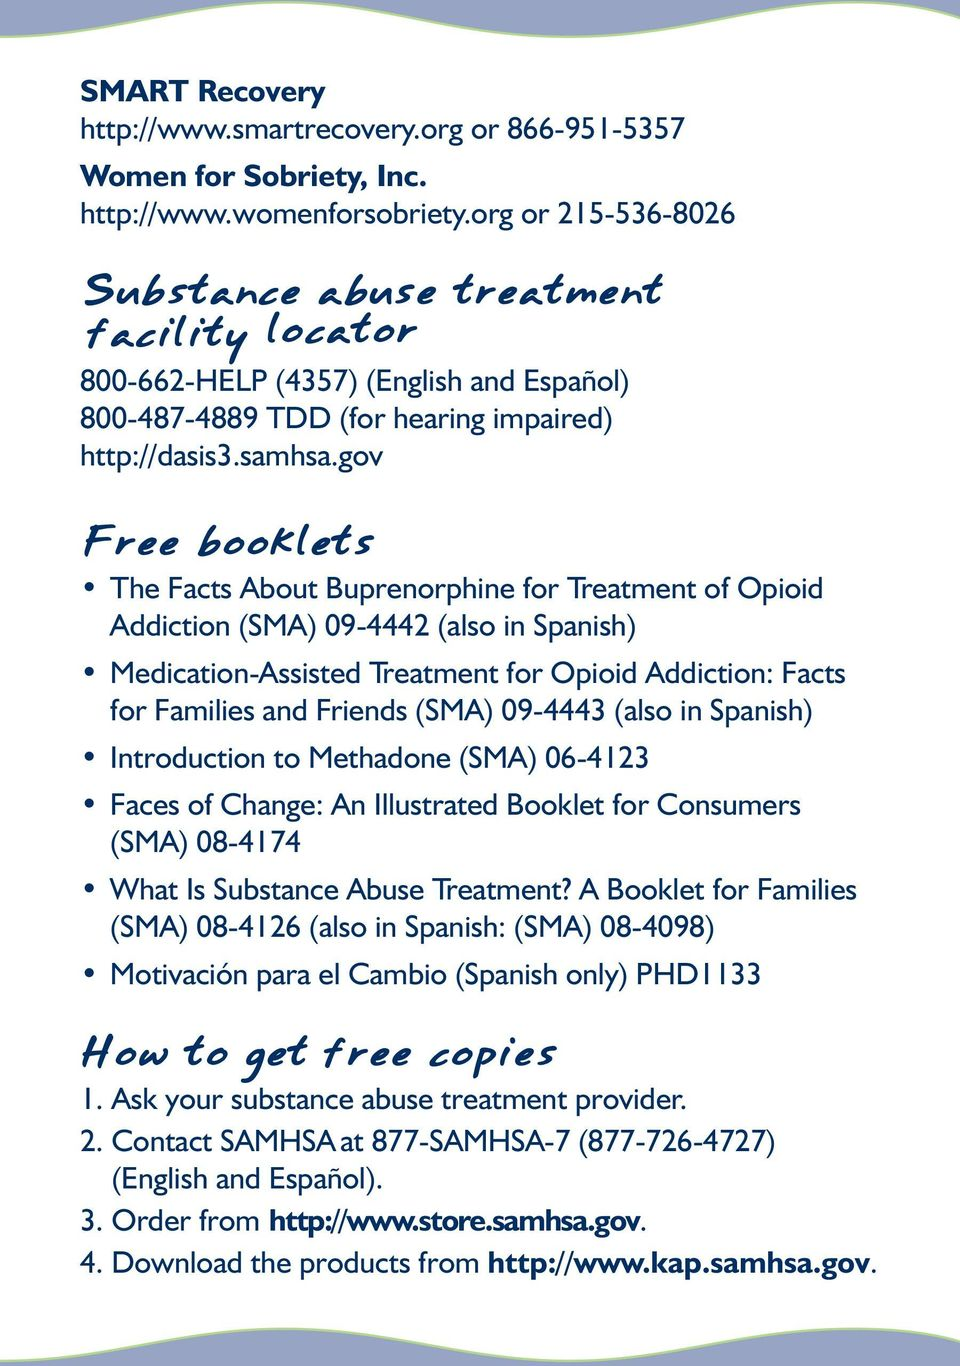 gov Free booklets The Facts About Buprenorphine for Treatment of Opioid Addiction (SMA) 09-4442 (also in Spanish) Medication-Assisted Treatment for Opioid Addiction: Facts for Families and Friends